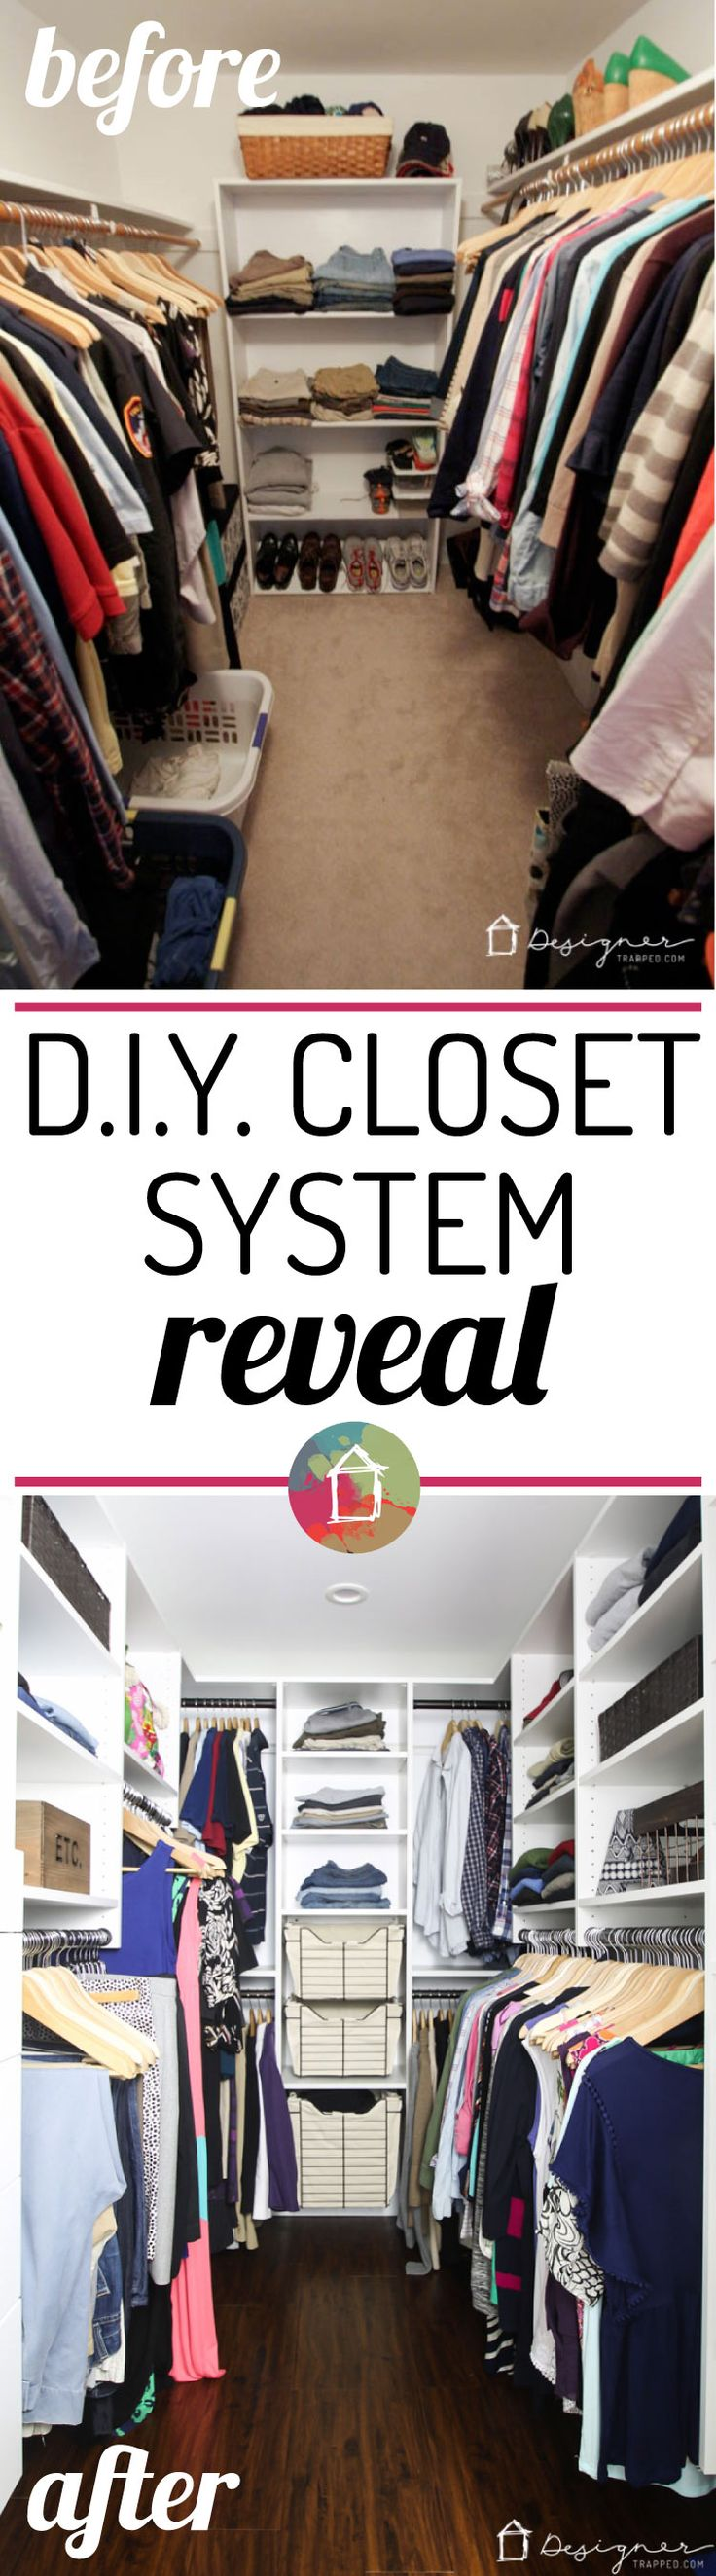 WOW! This DIY closet system reveal is seriously amazing. It's beautiful and seems easy to install and affordable. Now I just need to convince the hubby :)